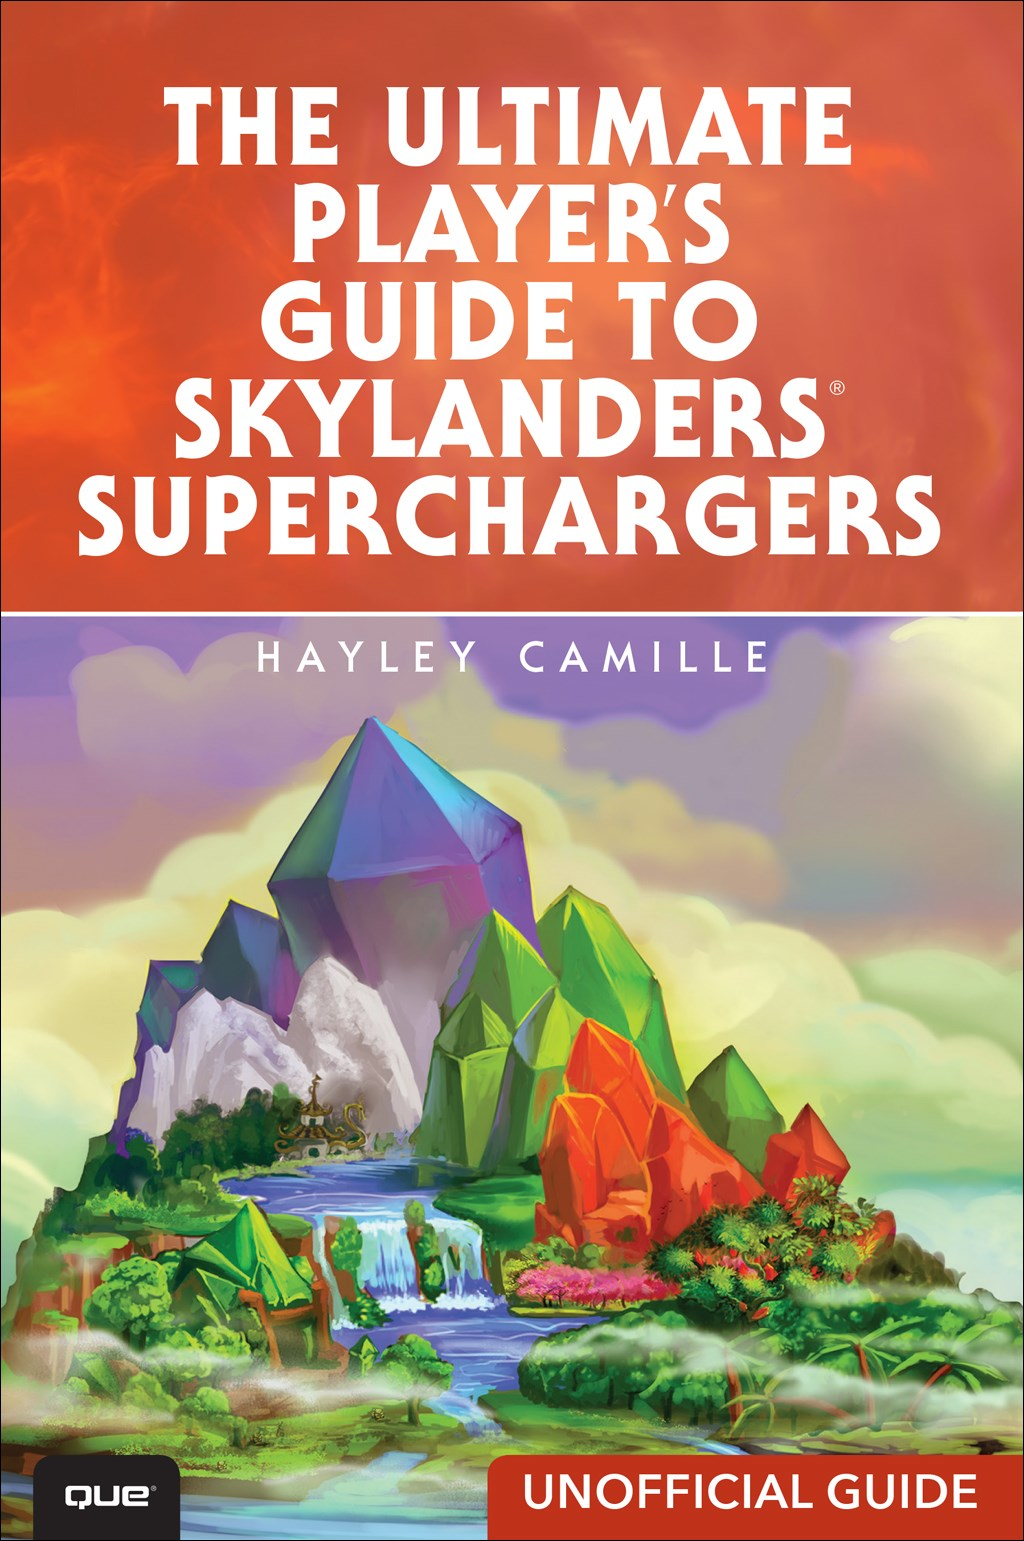 Ultimate Player's Guide to Skylanders SuperChargers (Unofficial Guide), The 9780789757159